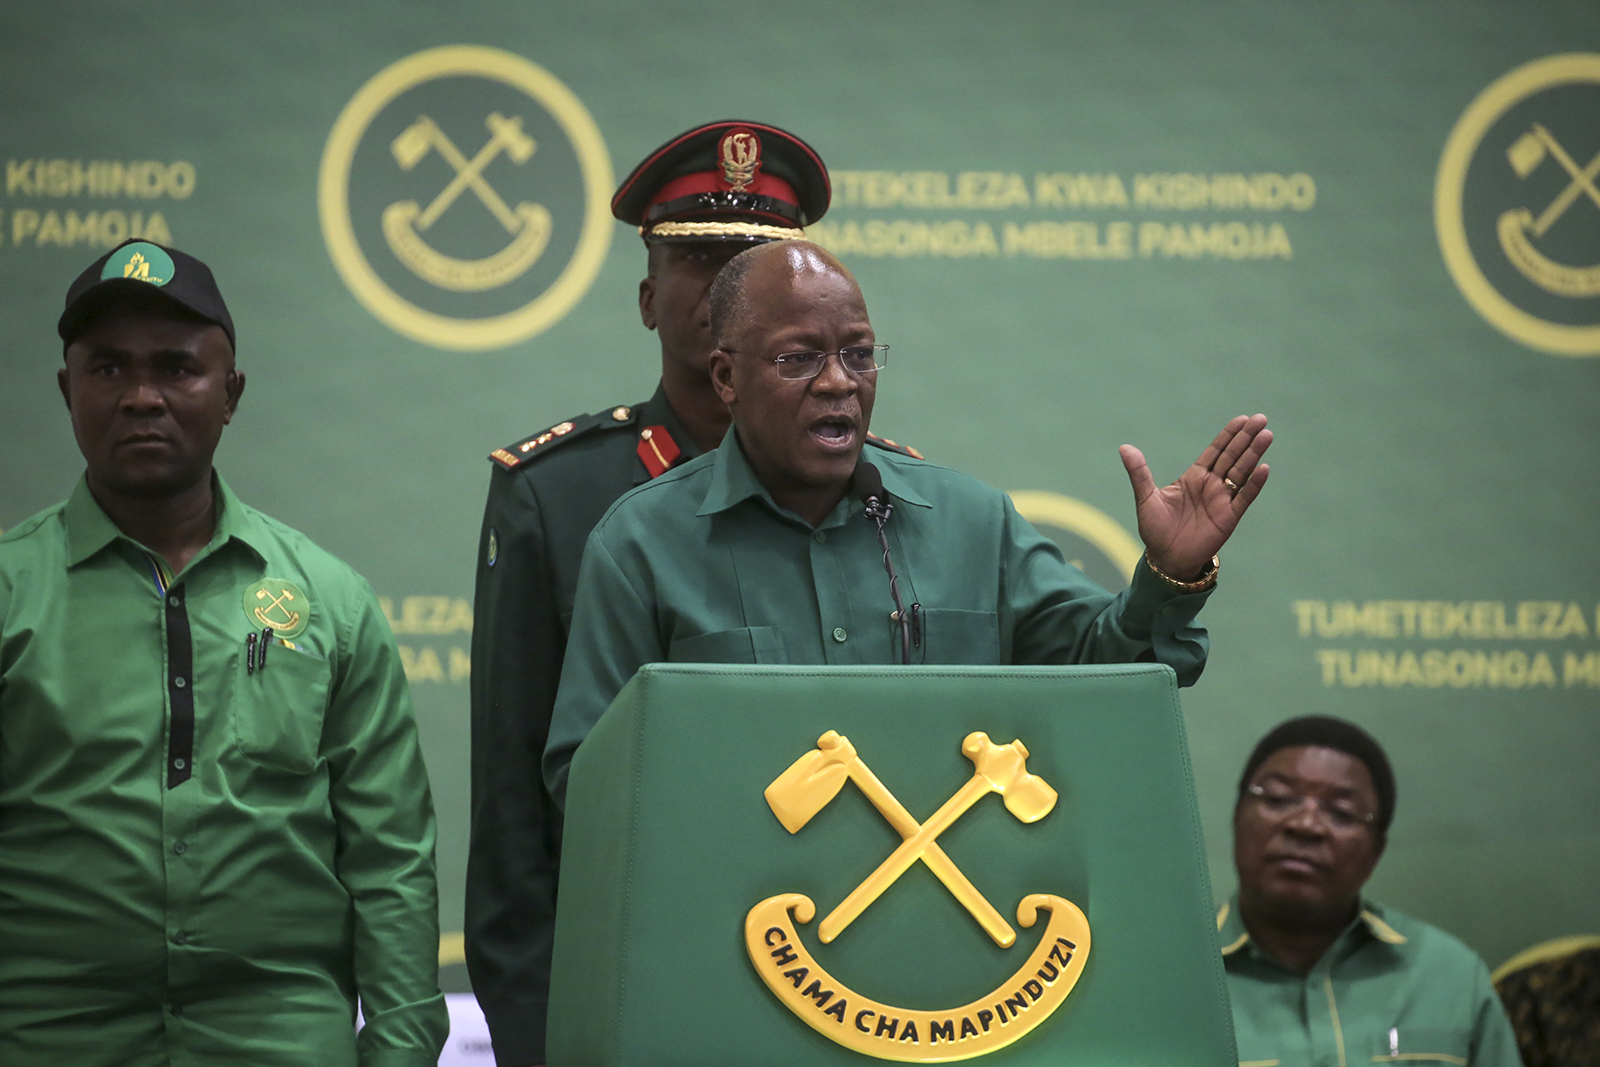 FILE - In this July 11, 2020, file photo, Tanzania's President John Magufuli speaks at the national congress of his ruling Chama cha Mapinduzi (CCM) party in Dodoma, Tanzania. Tanzania's president John Magufuli finally acknowledged Sunday, Feb. 21, 2021, that his country has a coronavirus problem after claiming for months that the disease had been defeated by prayer, urging citizens to take precautions and even wear face masks - but only locally made ones. (AP Photo, File)